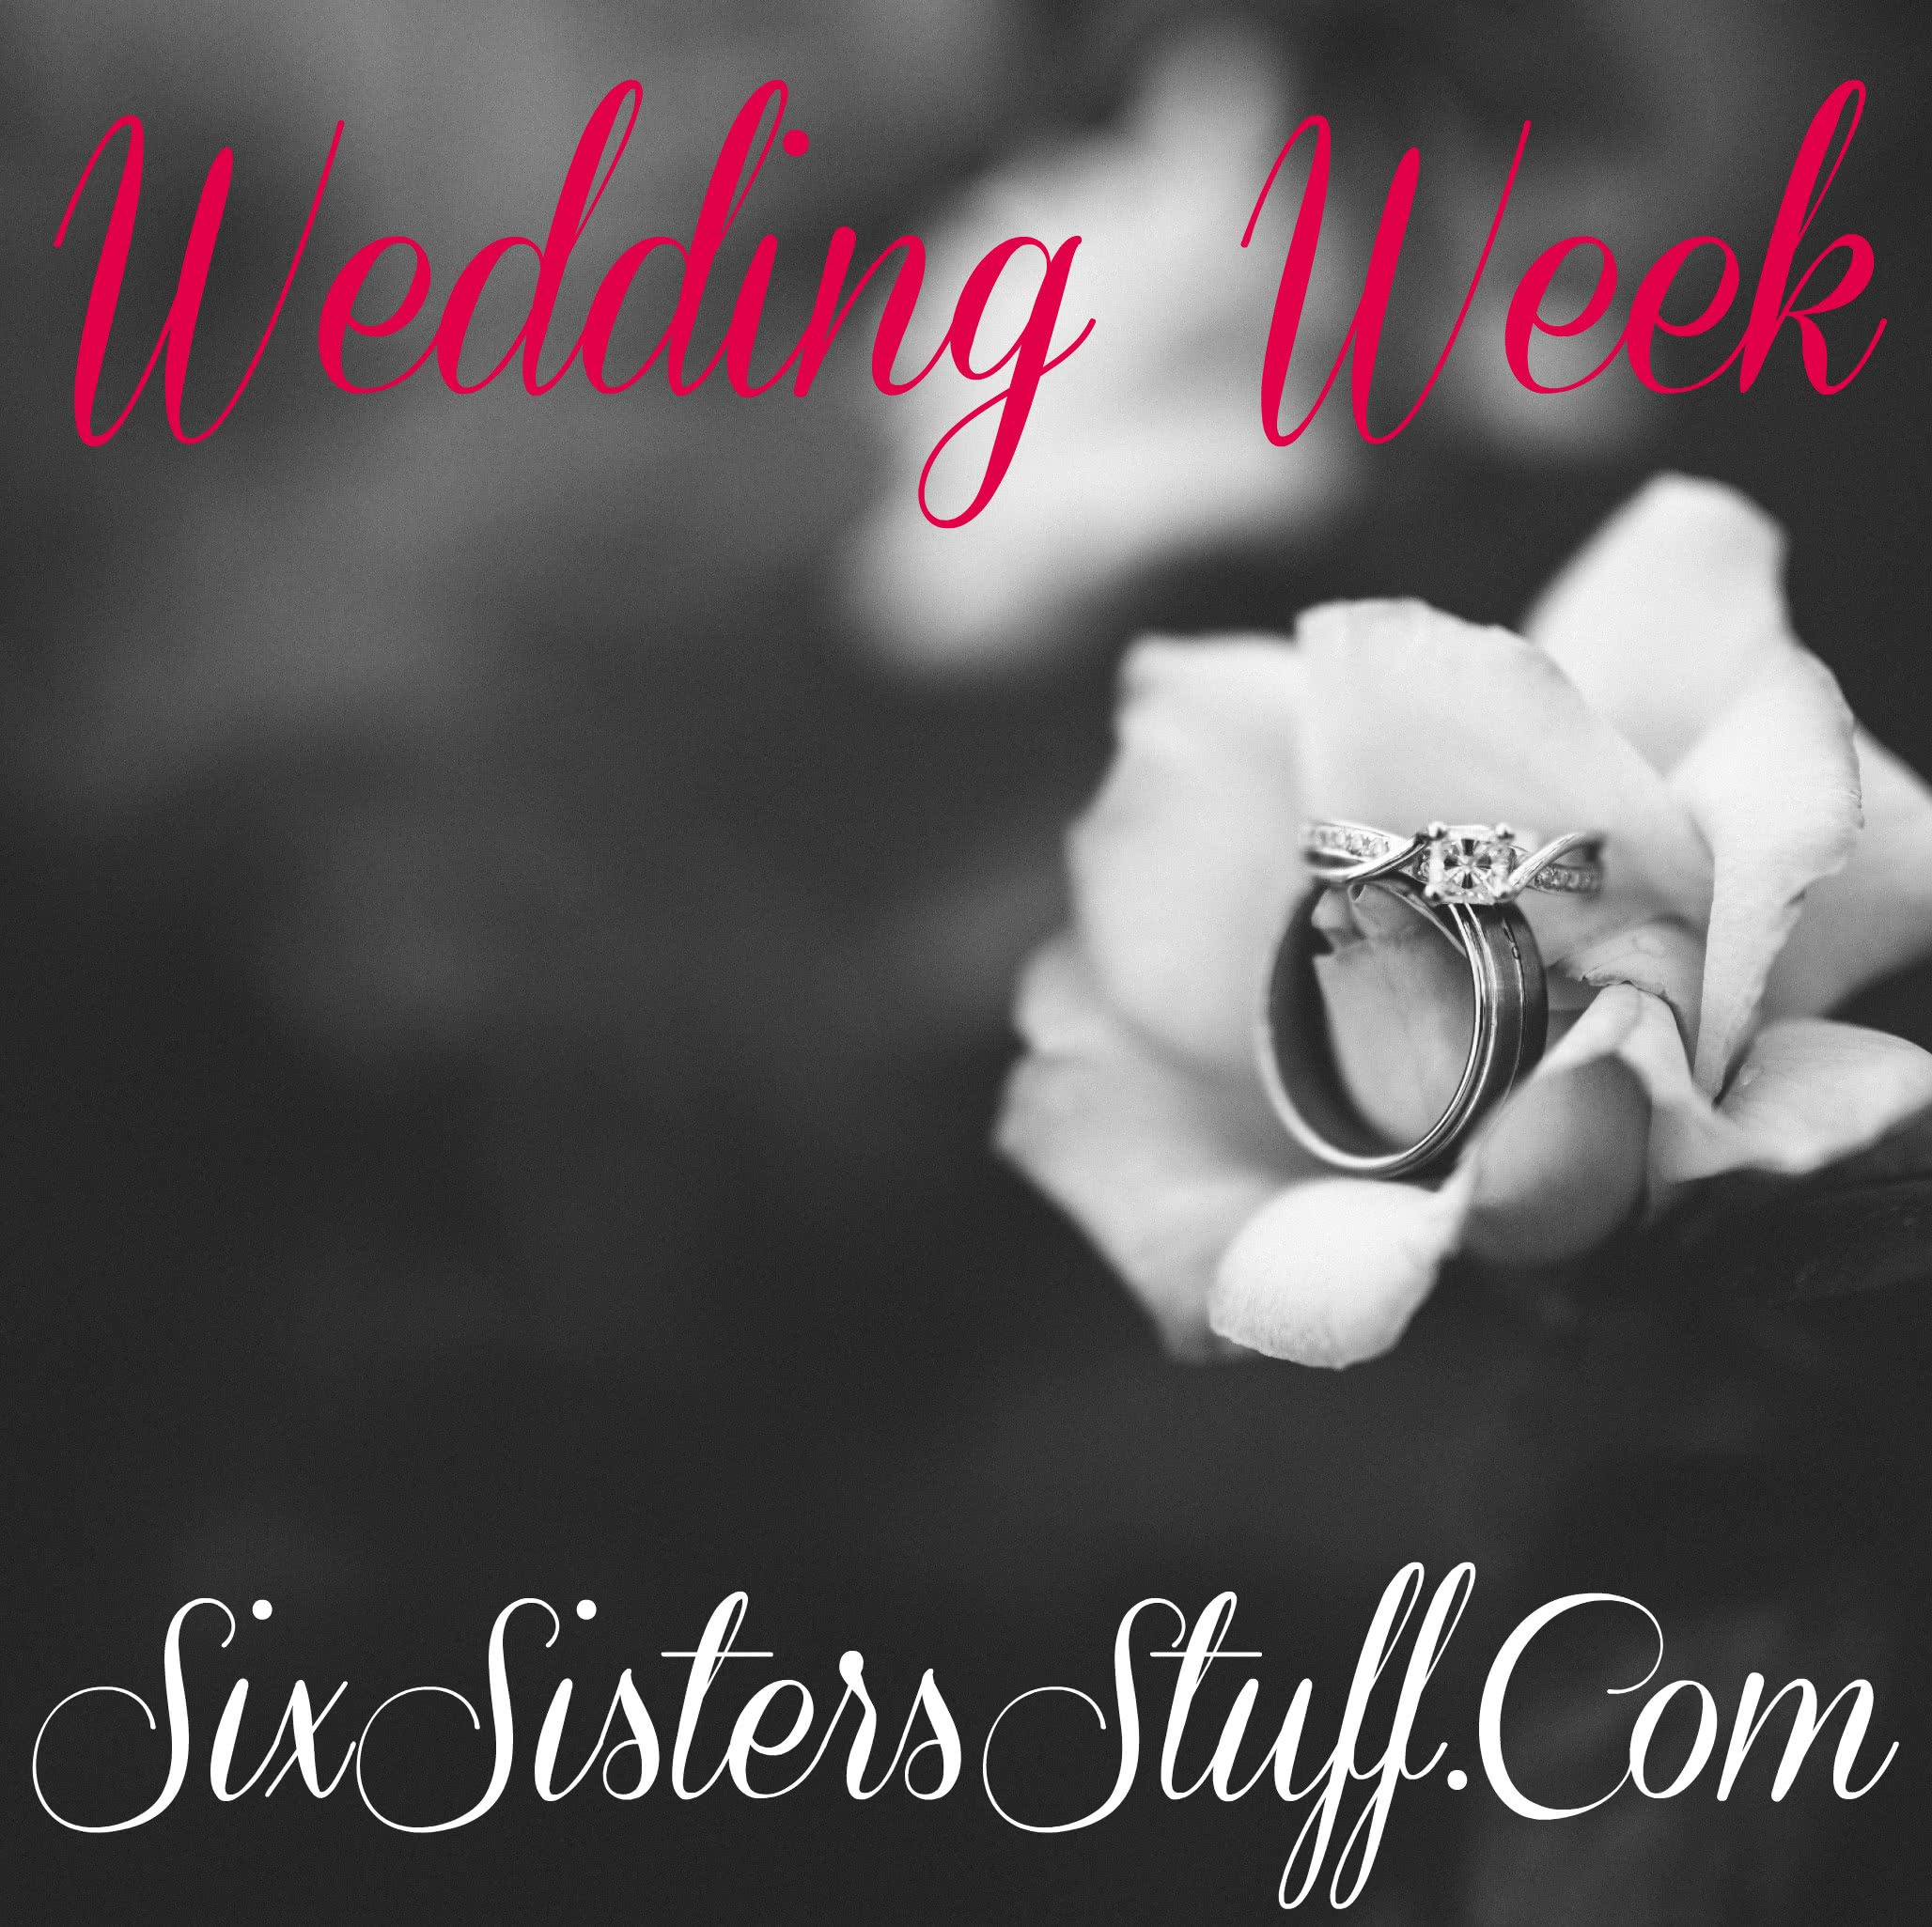 Wedding-Week